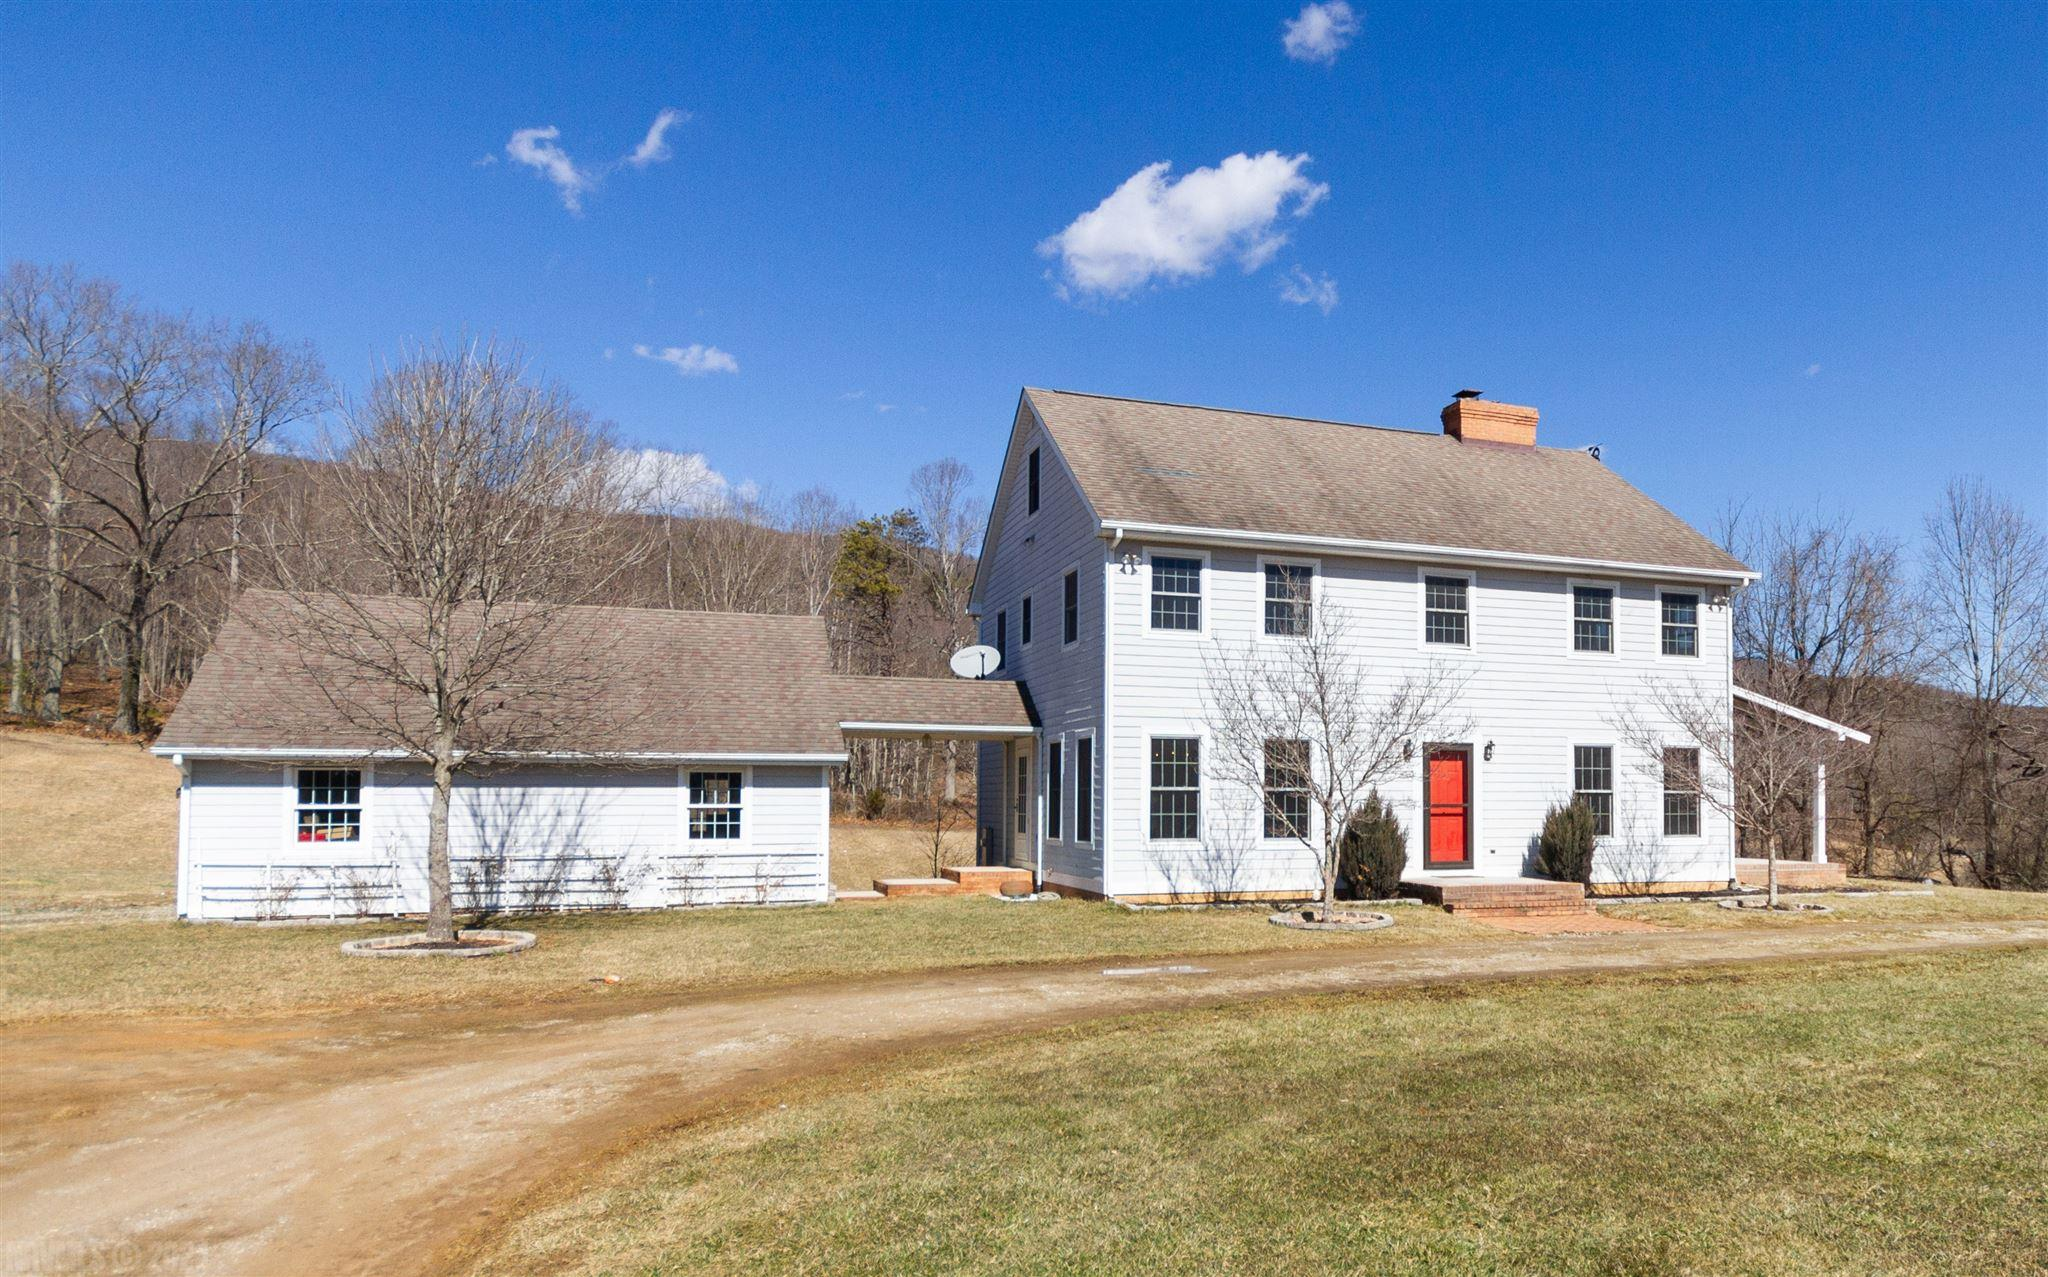 5 Flat acres of beautiful land and this traditionally styled house sit wonderfully together located only a few minutes from downtown Blacksburg.  Come experience country living close to town.